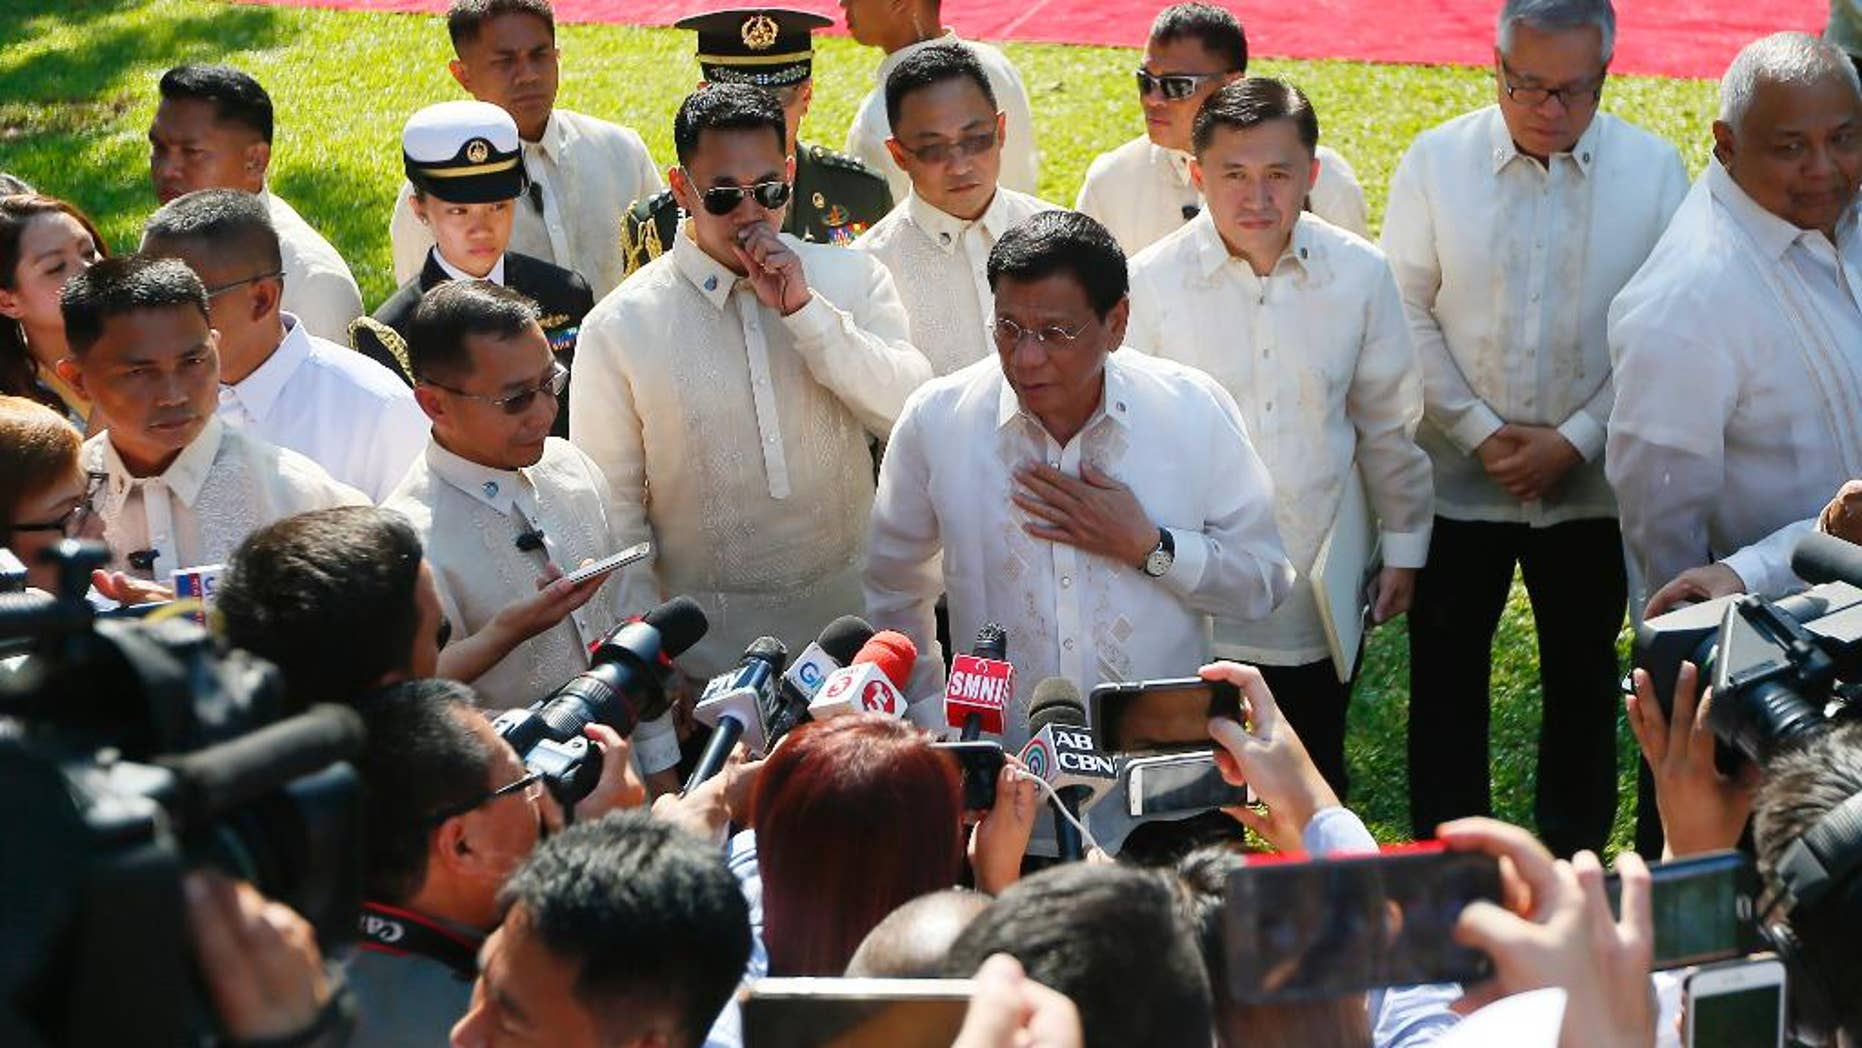 Philippine President Rodrigo Duterte talks to the media prior to a welcoming ceremony for Indonesian President Joko Widodo, at Malacanang Palace grounds in Manila, Philippines Friday, April 28, 2017. When Duterte hosts a summit of Southeast Asian leaders this weekend, the spotlight will be on him. Just less than a year in power, Duterte faces a mass murder complaint before the International Criminal Court and an impeachment bid at home as bodies continue to pile up in his war on illegal drugs.(AP Photo/Bullit Marquez)